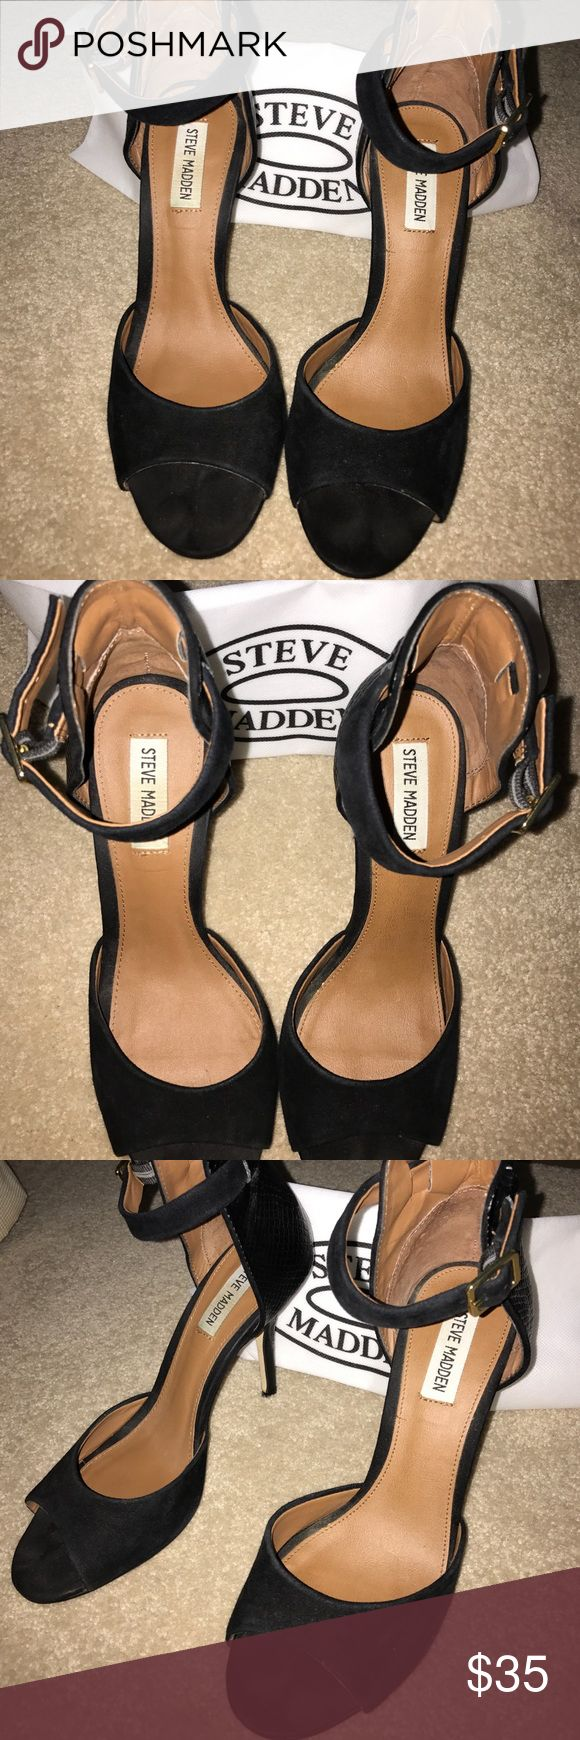 """Steve Madden Black Heels Gently used Black """"stepout"""" Steve Madden suede and leather high heels. Size 8, would also work for 8.5. Ankle strap heels, heel height is 3.5. Worn out twice, right back has some wear. Super comfortable and stylish shoe, in great condition! Comes with cloth bag. Steve Madden Shoes Heels"""